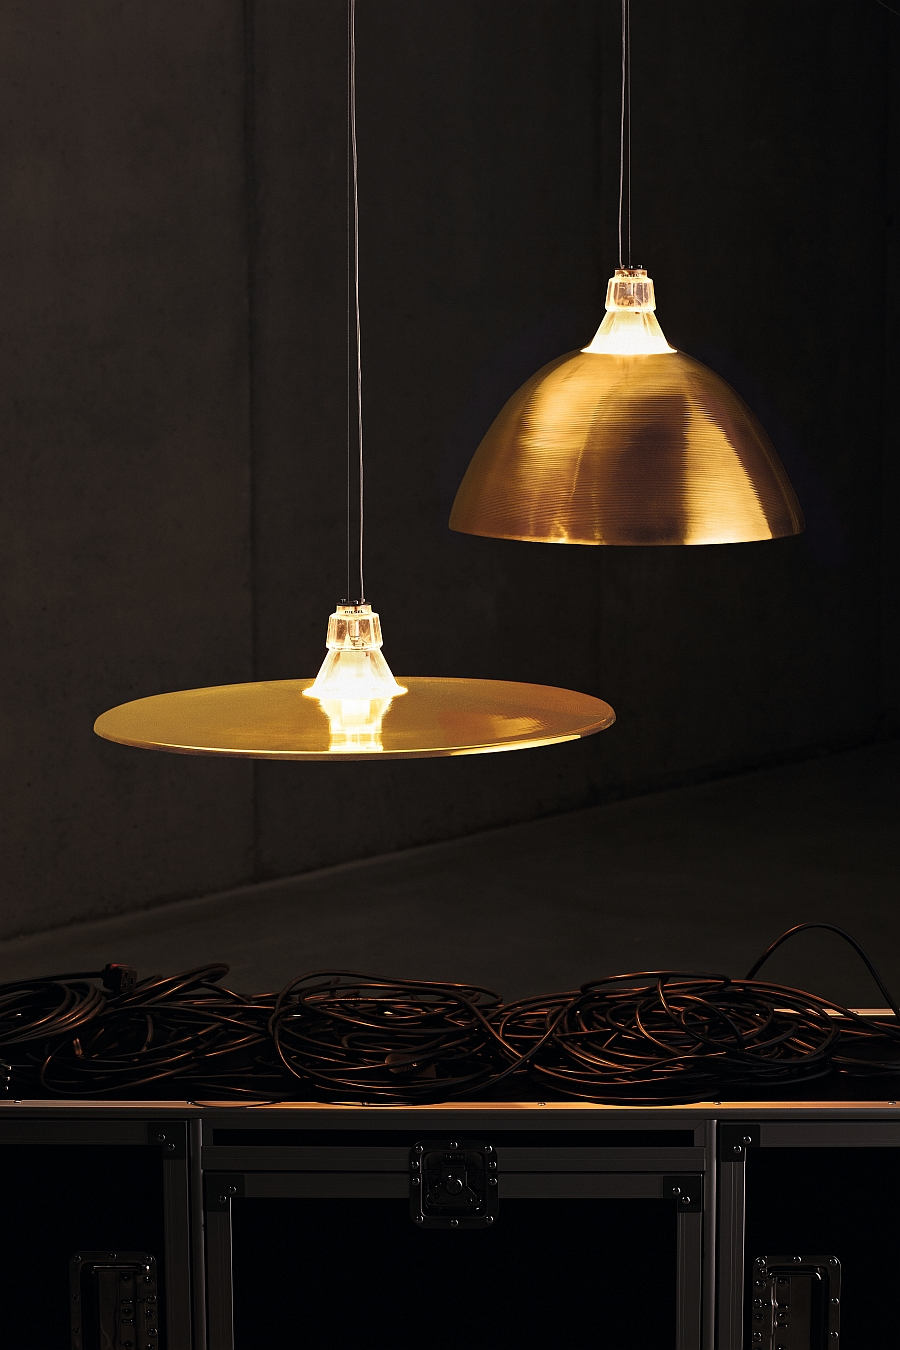 Crash and Bell Lighting set inspired by a drum kit